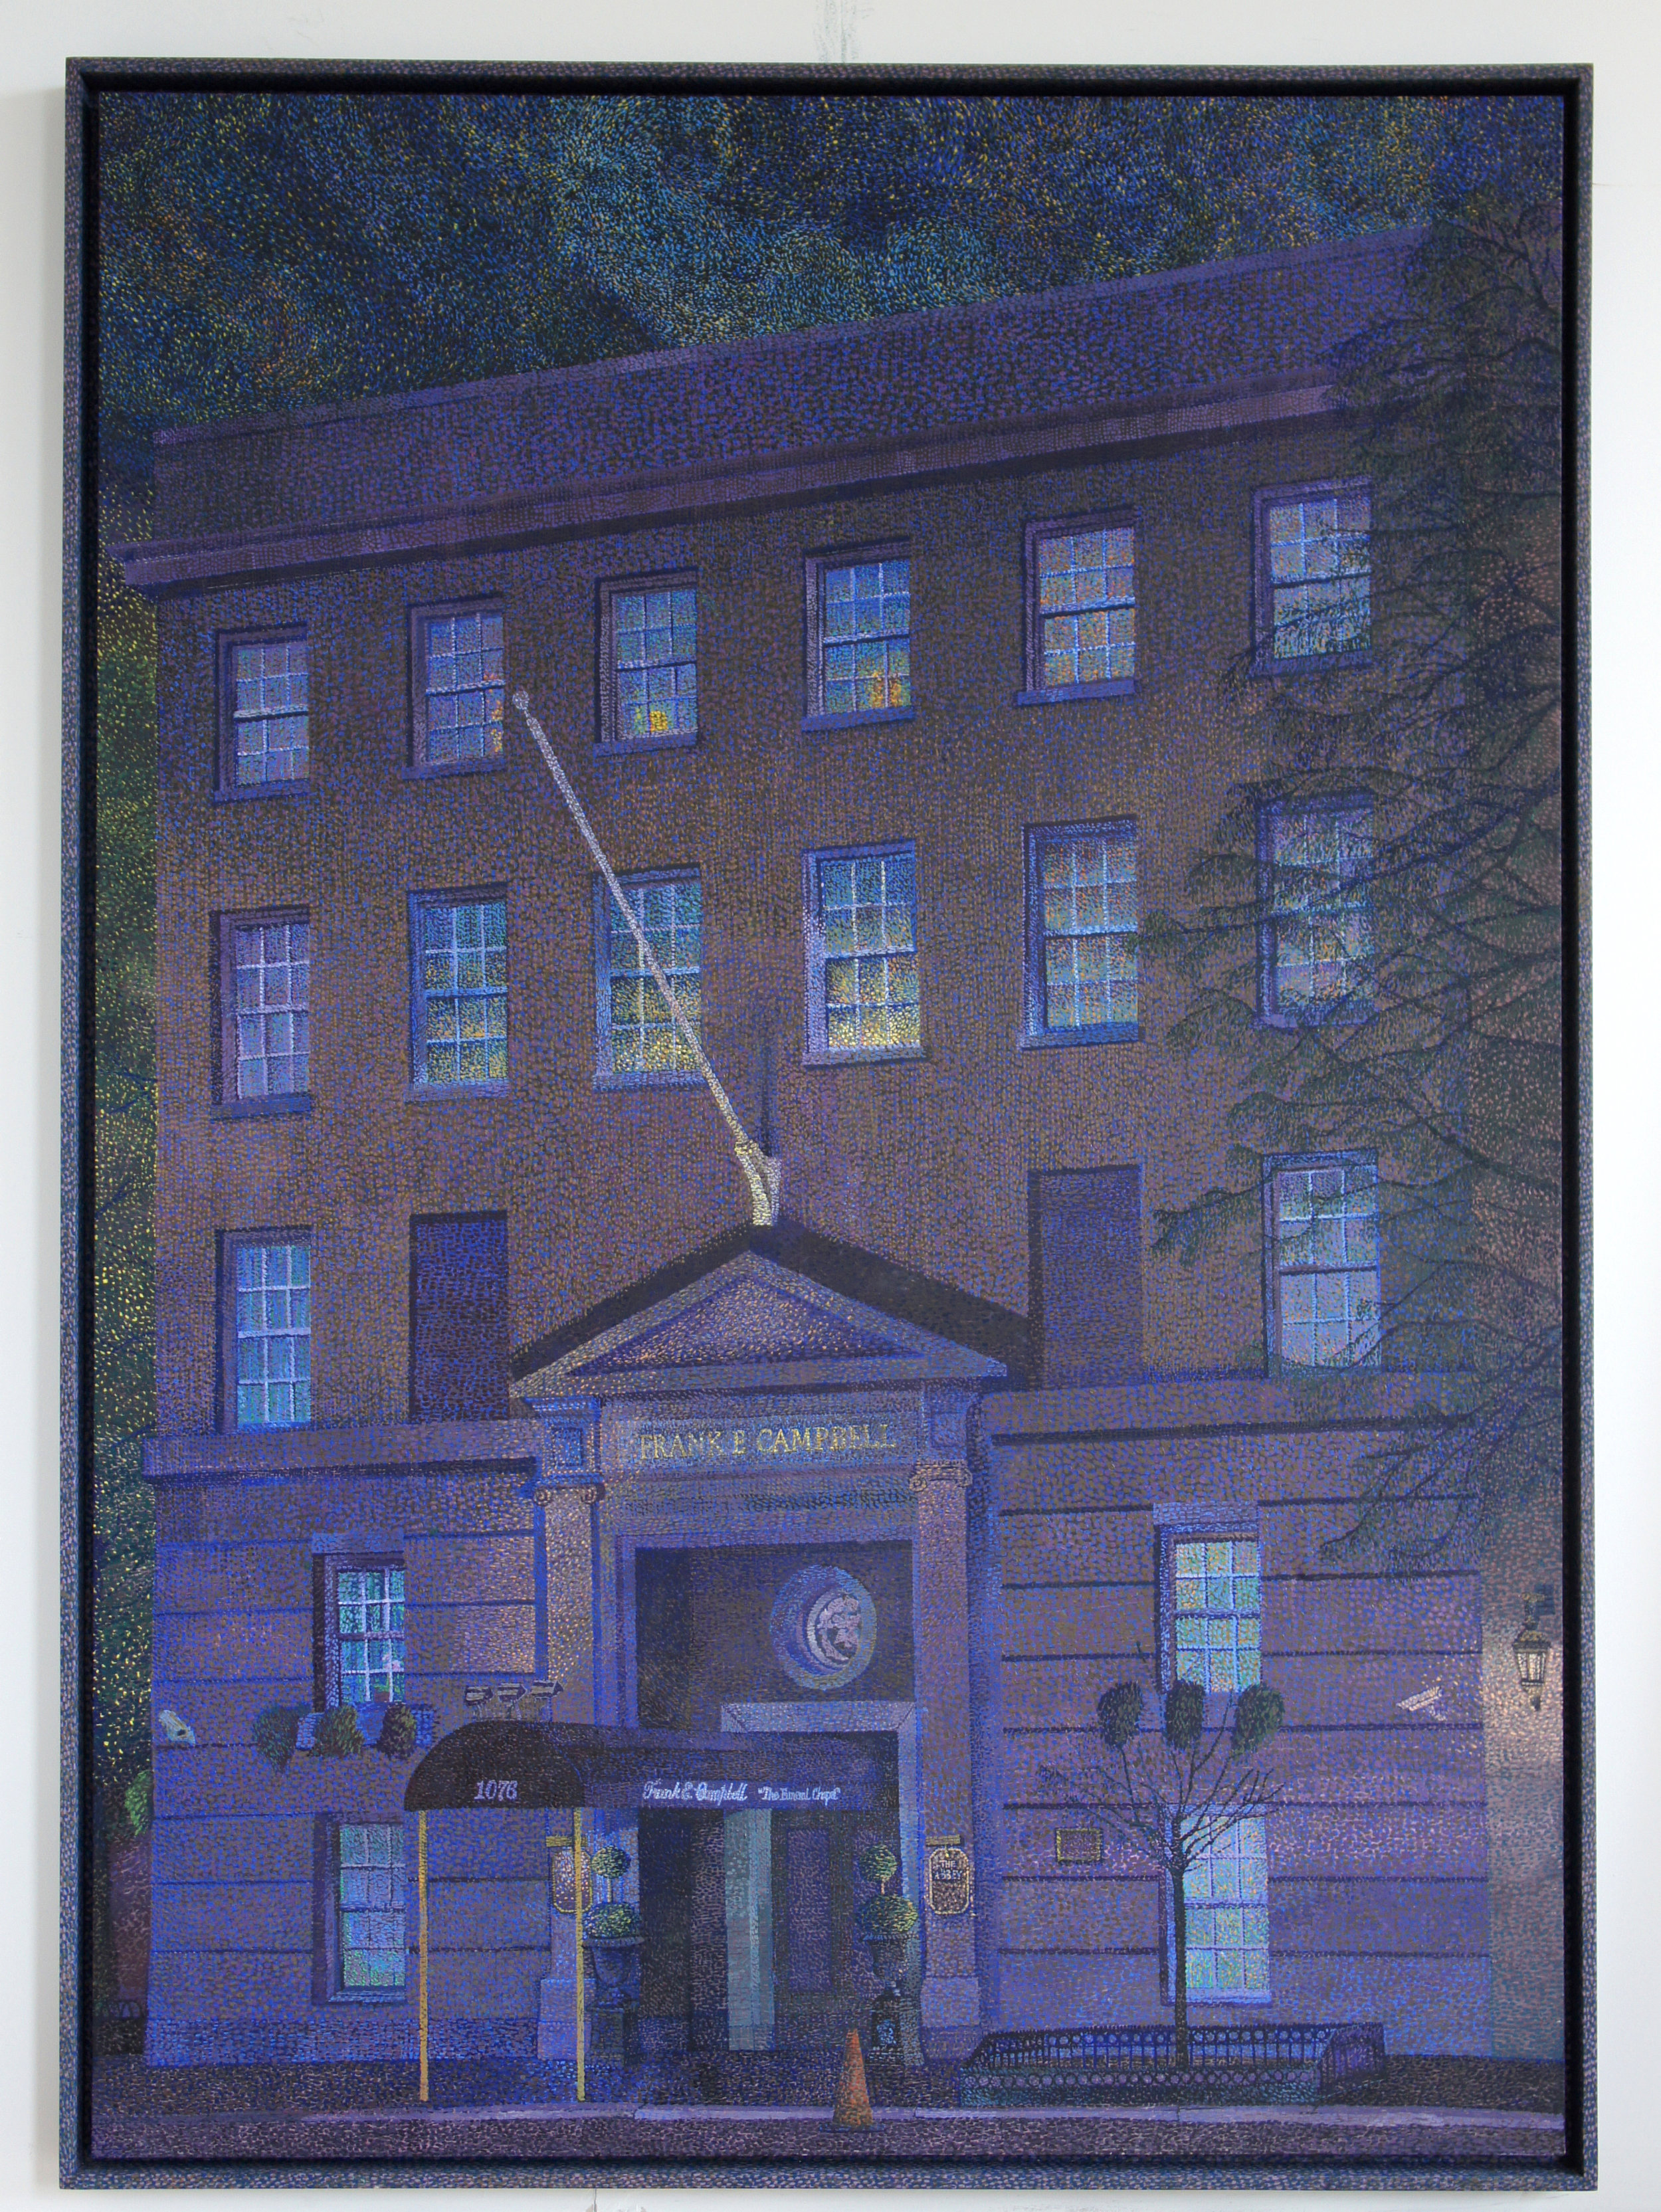 Frank E. Campbell (Night) , 2018, oil on canvas and painted wooden frame, 48 x 67 inches (121.9 x 170.1 centimeters)